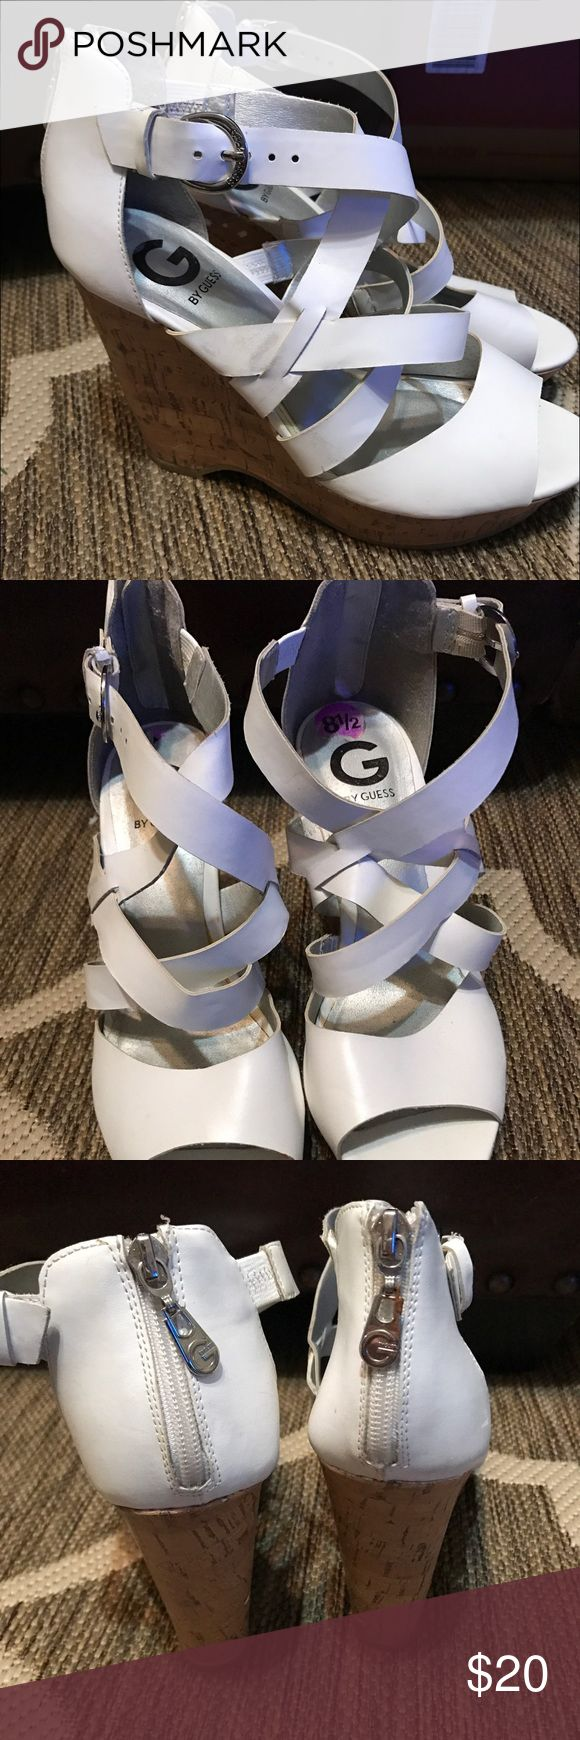 Used white wedges G By Guess shoes. Size 8 1/2, only worn once for a sorority recruitment. Fun with jeans or a cute summer dress. G by Guess Shoes Wedges